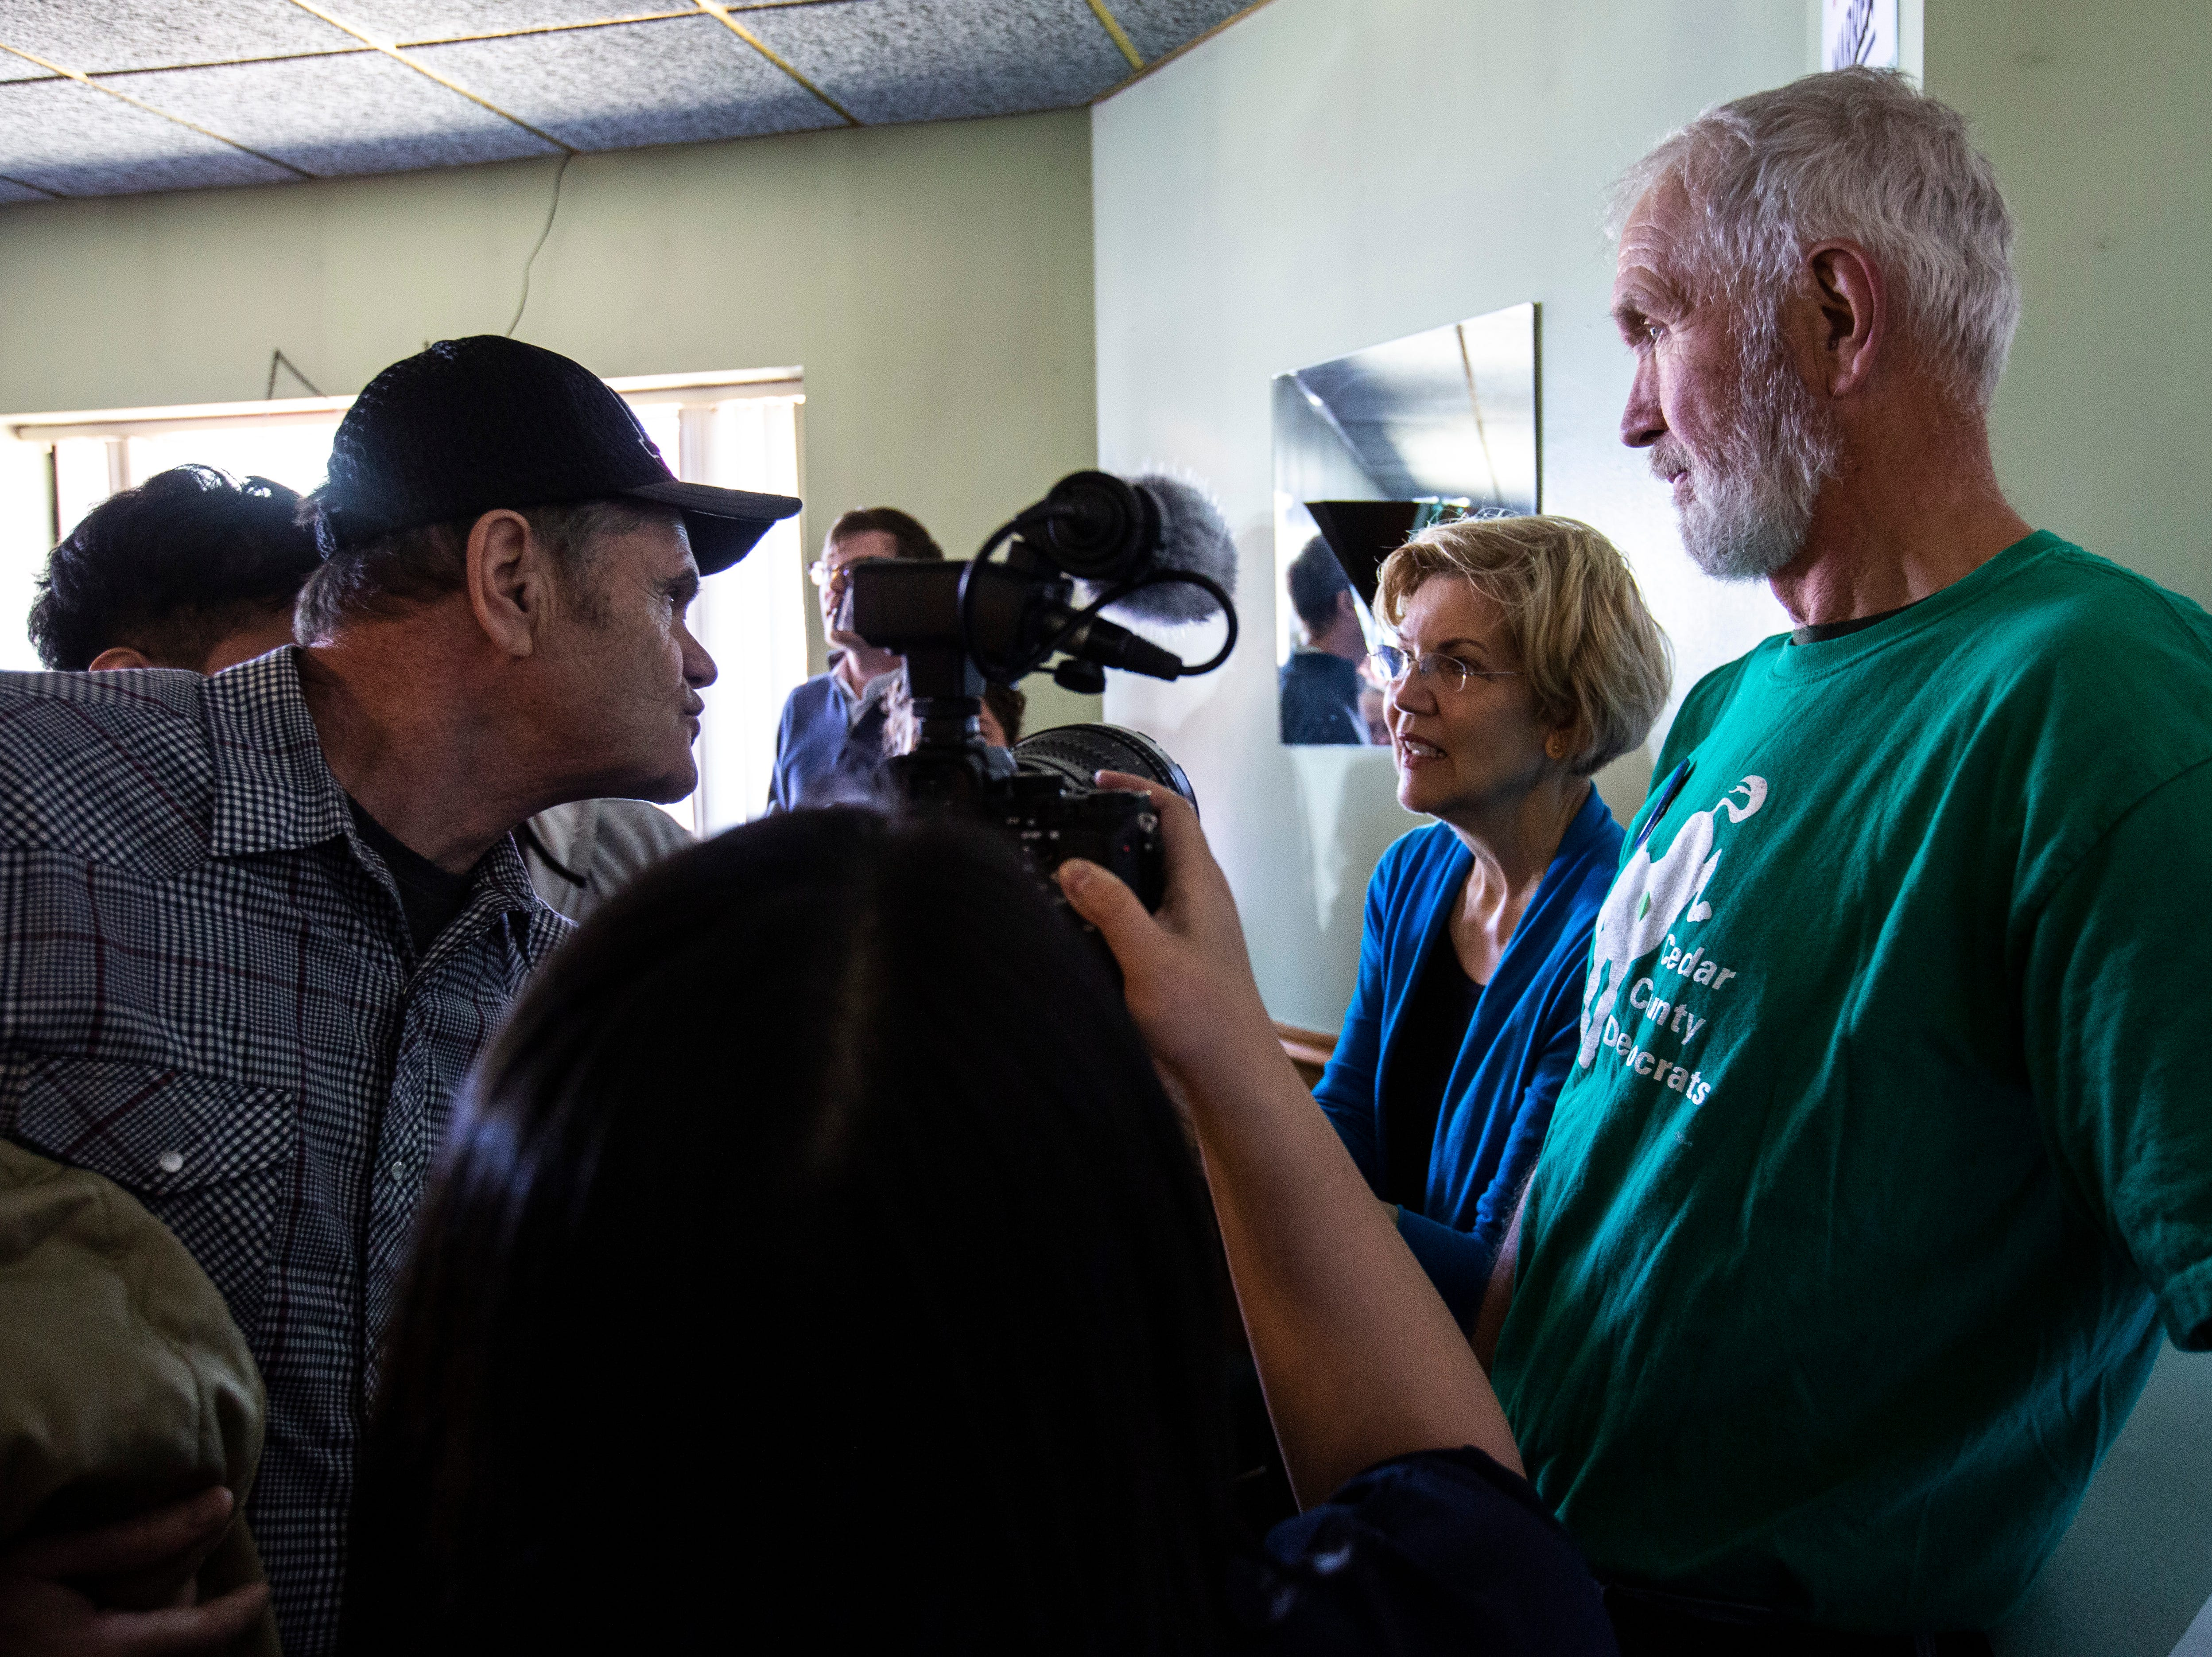 """U.S. Sen. Elizabeth Warren, D-Mass., shakes hands with a retired engineer Bill Sheeder, left, of Muscatine, during a campaign event, Friday, April 26, 2019, at the Tipton Family Restaurant in Tipton, Iowa. Sheeder traveled with to the event with his wife who is also retired. He has been following Warren's policies for the past three years and said he supports her because, """"She's a fighter."""""""